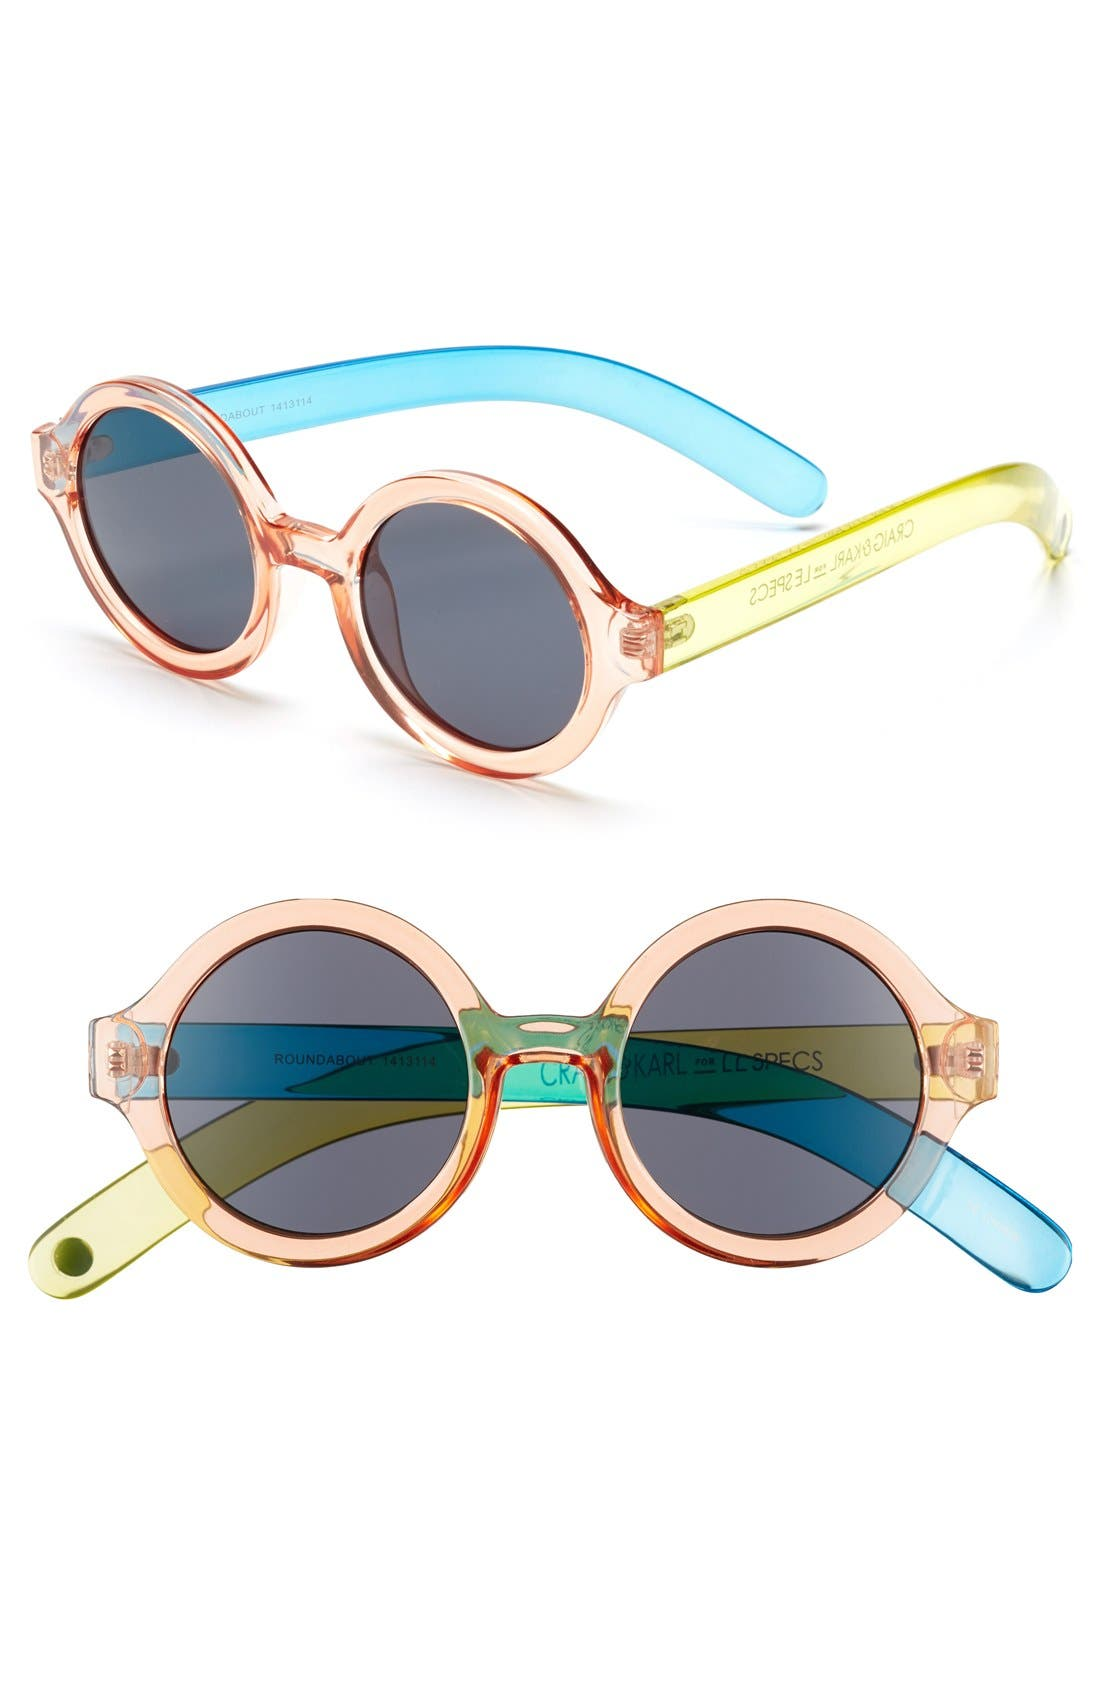 Craig and Karl x Le Specs 'Roundabout' 45mm Sunglasses,                             Main thumbnail 1, color,                             Clear Peach/ Blue/ Yellow